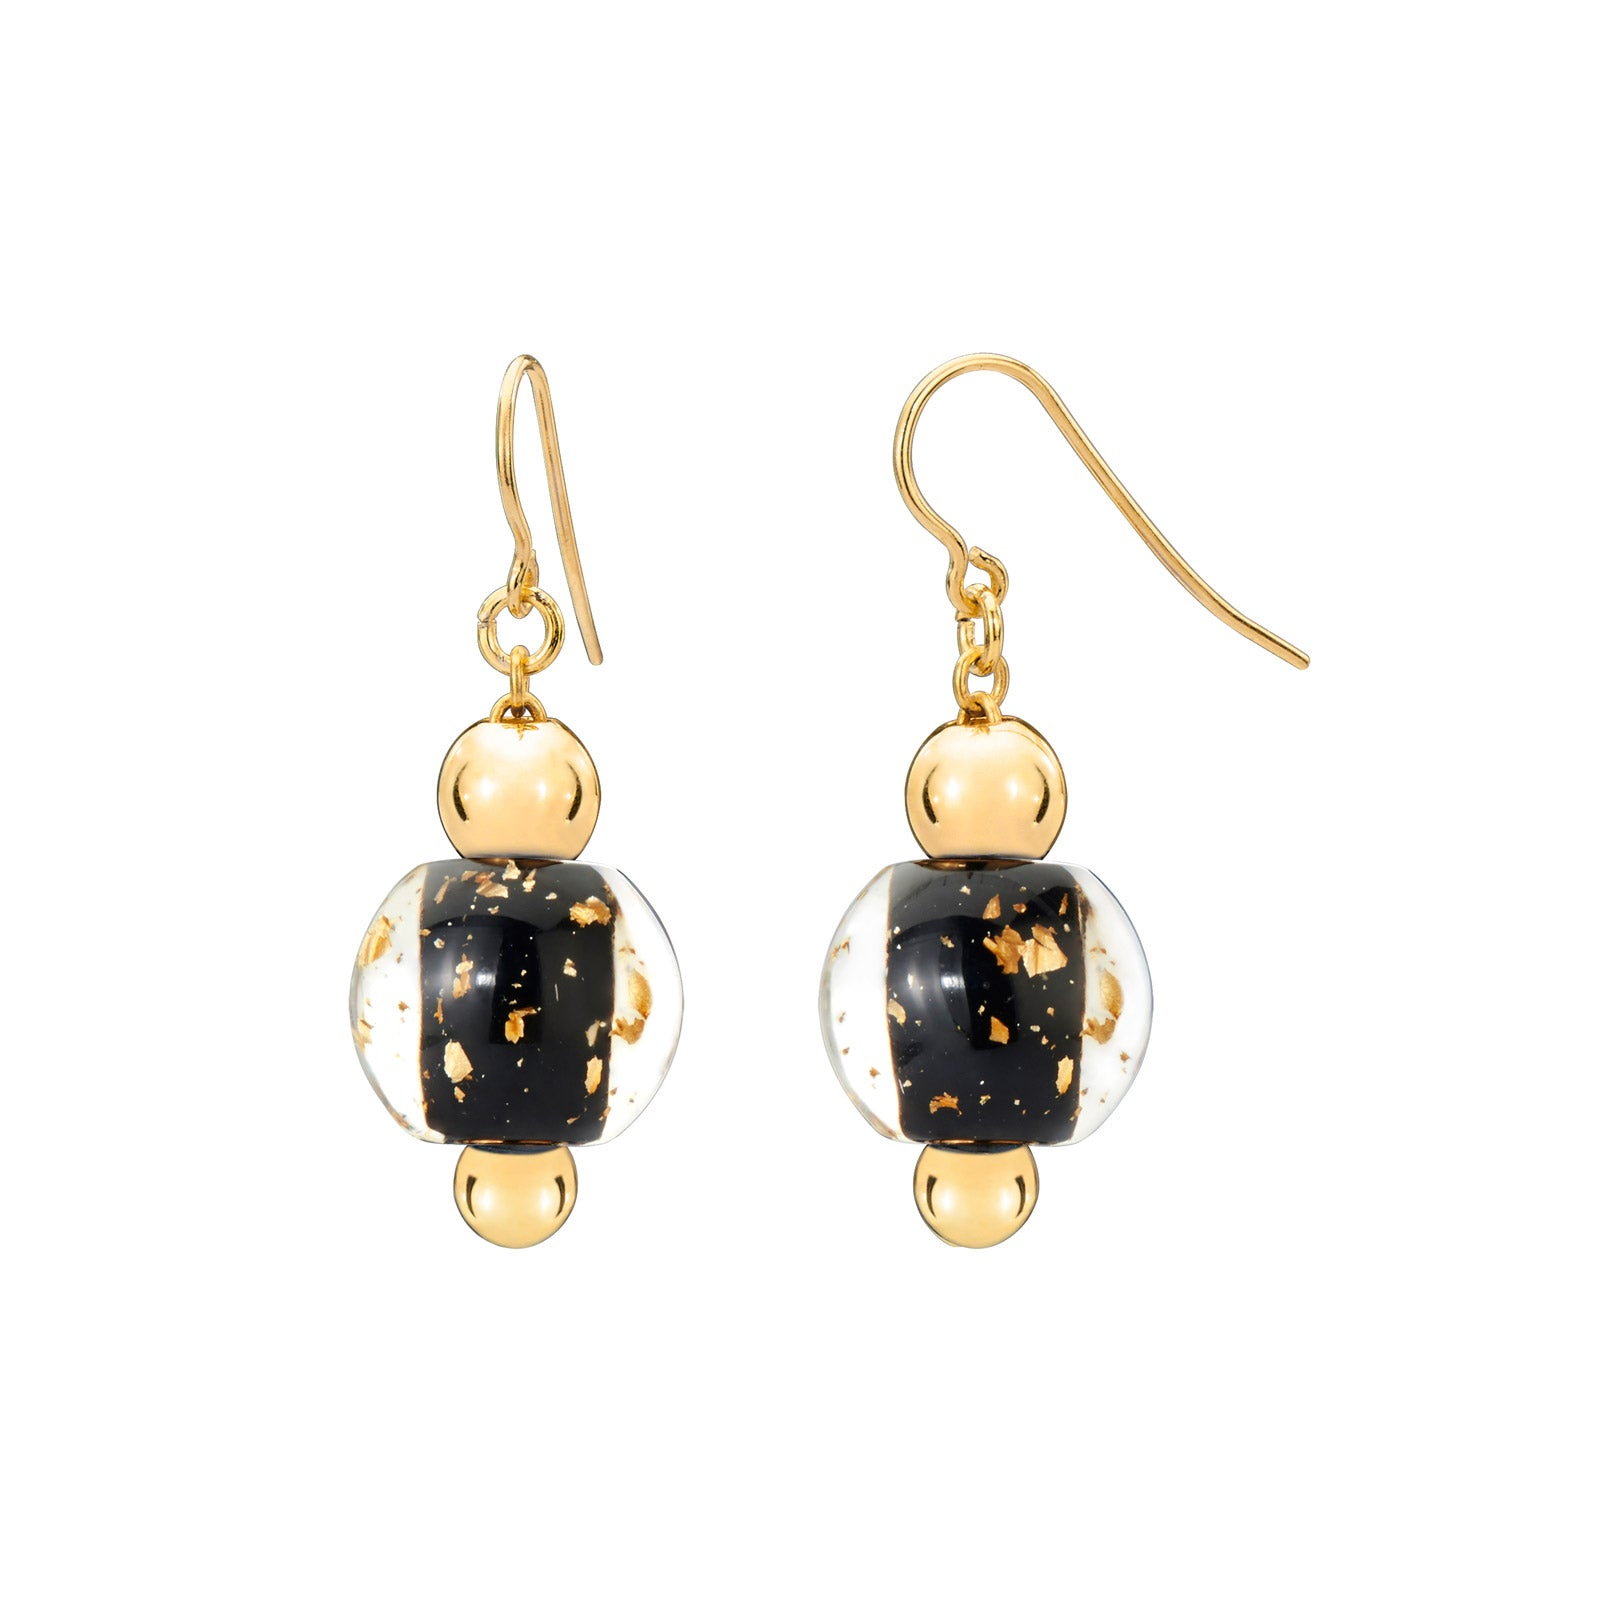 Mini Bead Lucite Earrings with Gold Flakes